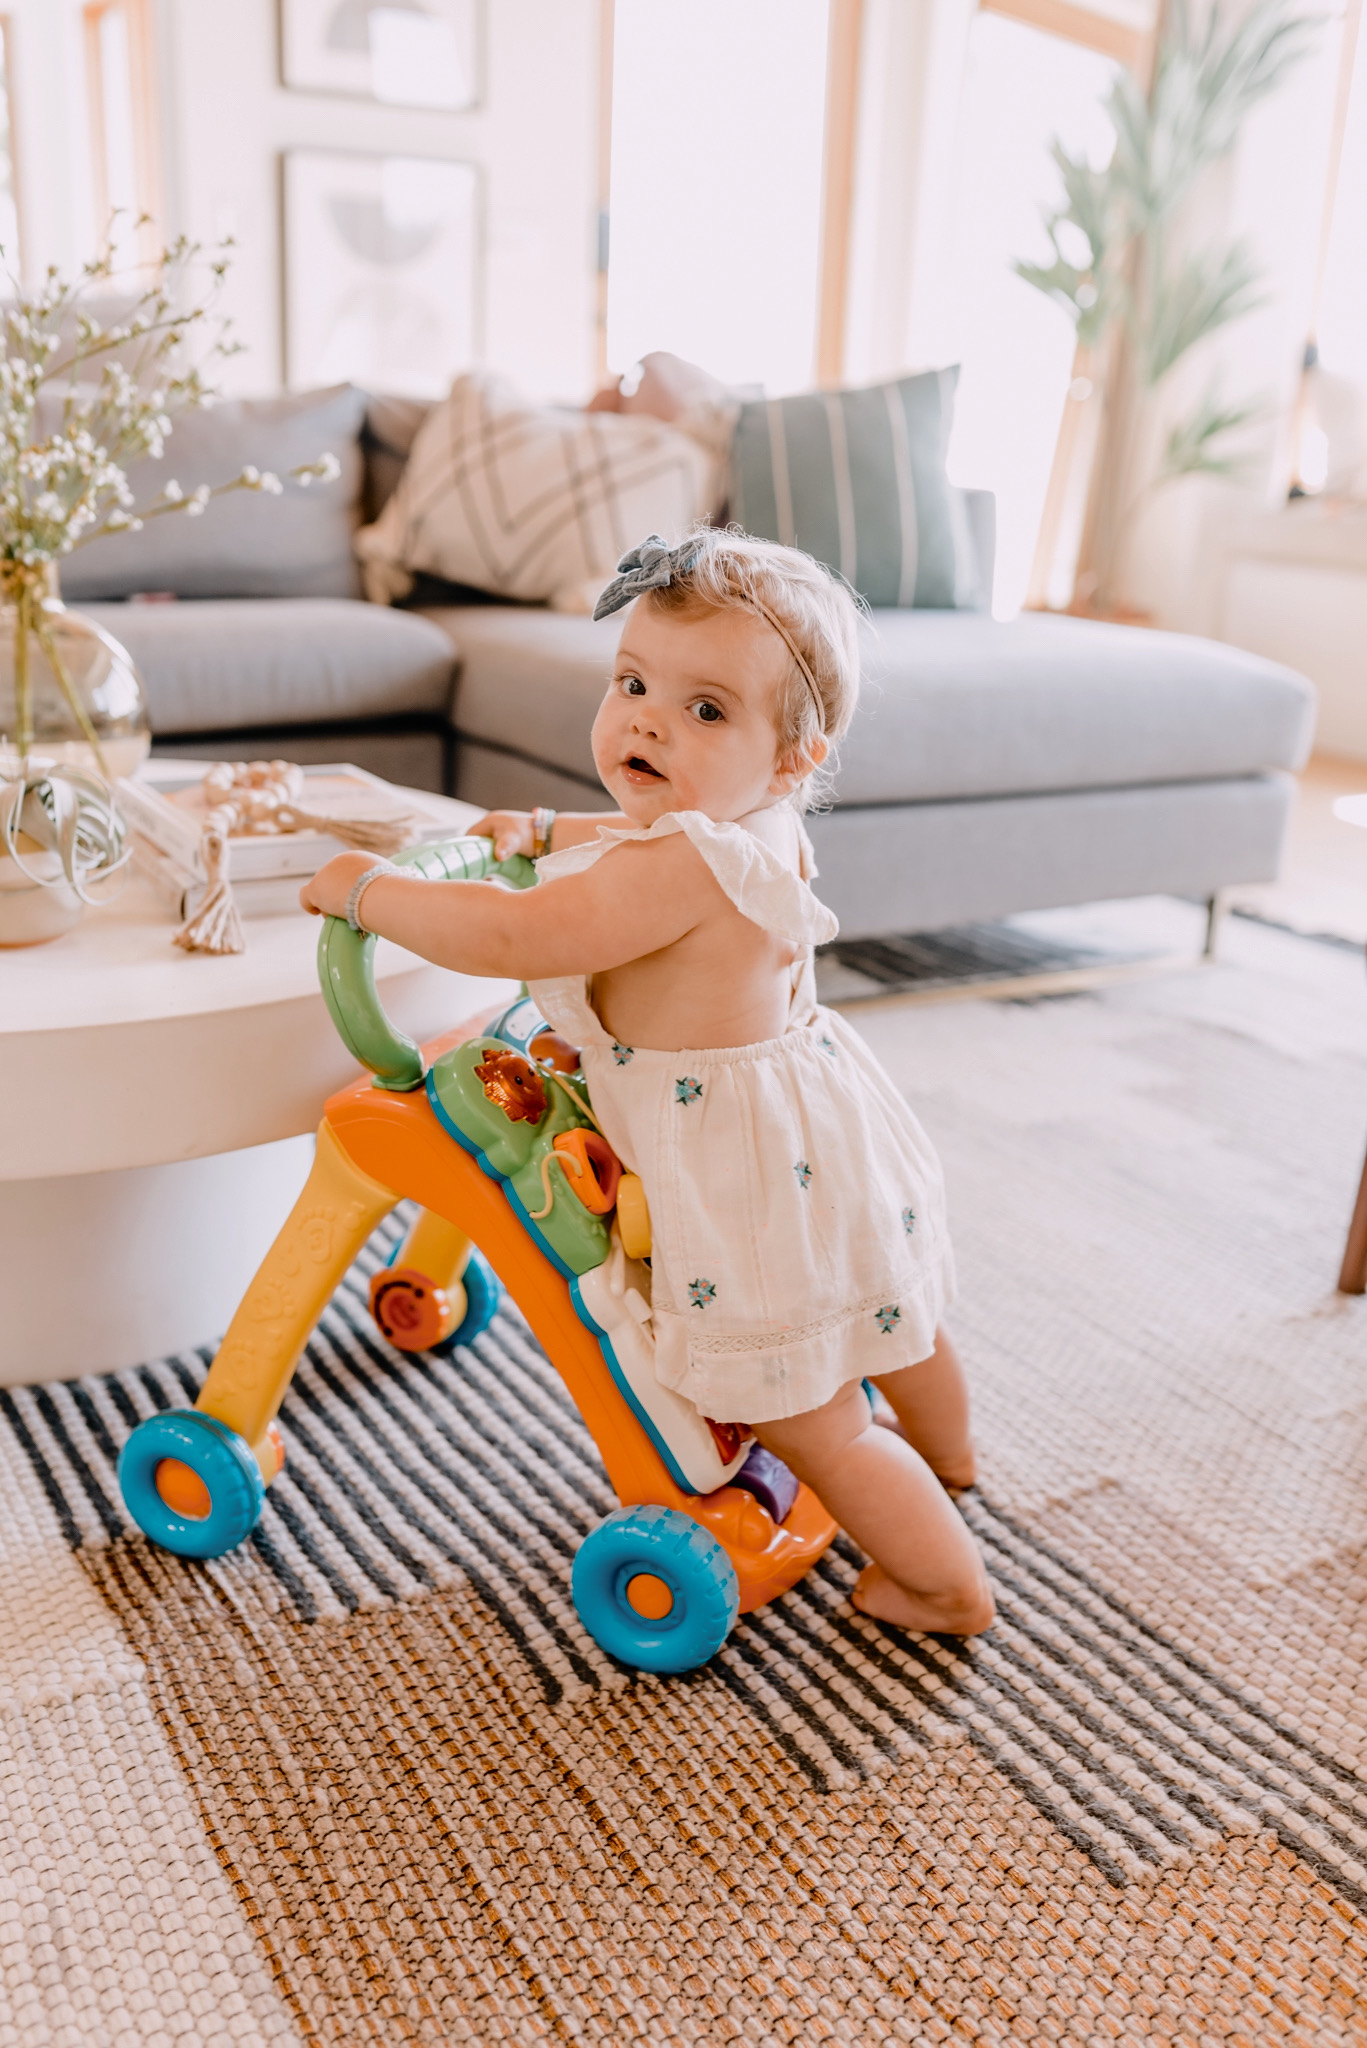 AMAZON FAVORITES: 20 GIFT IDEAS FOR ONE YEAR OLDS featured by top San Diego lifestyle blogger, Navy Grace | Gift Ideas for One Year Old by popular San Diego motherhood blog, Navy Grace: image of a one year old girl playing with a Sit to Stand Learning Walker.